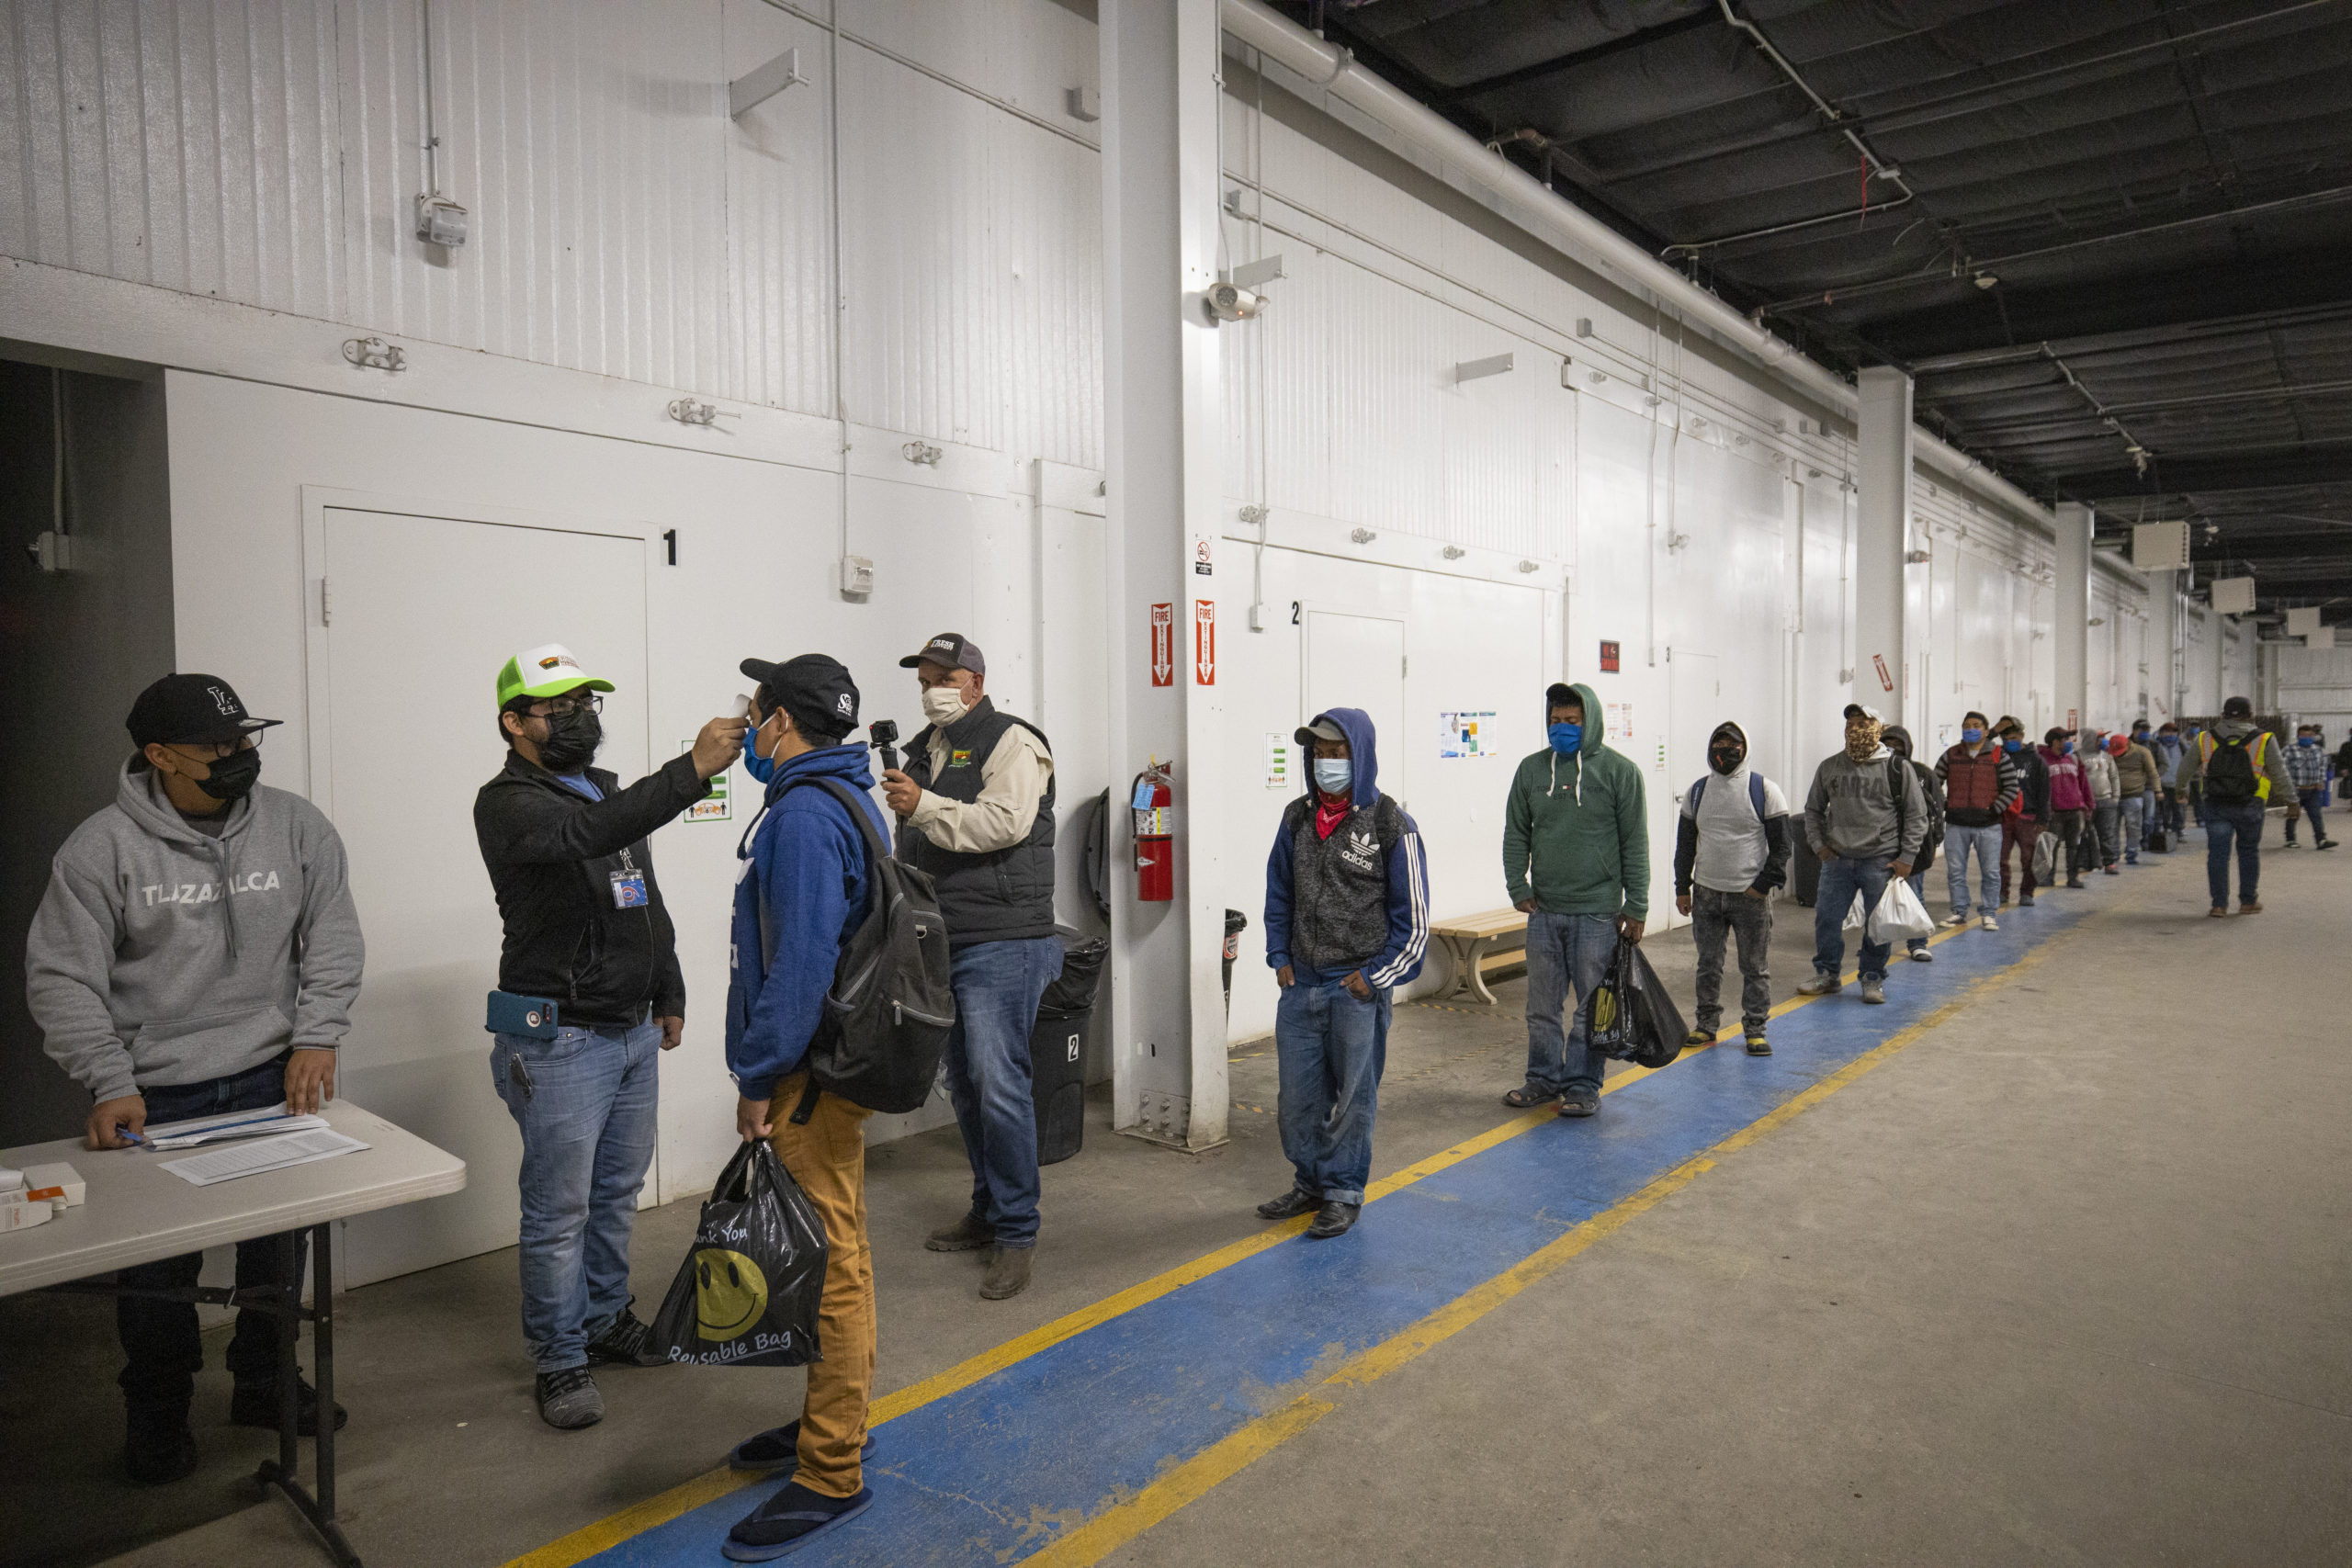 Migrant farm laborers have their temperature checked and are asked questions about their health before boarding the bus to their shift in King City, California last year. (Brent Stirton/Getty Images)